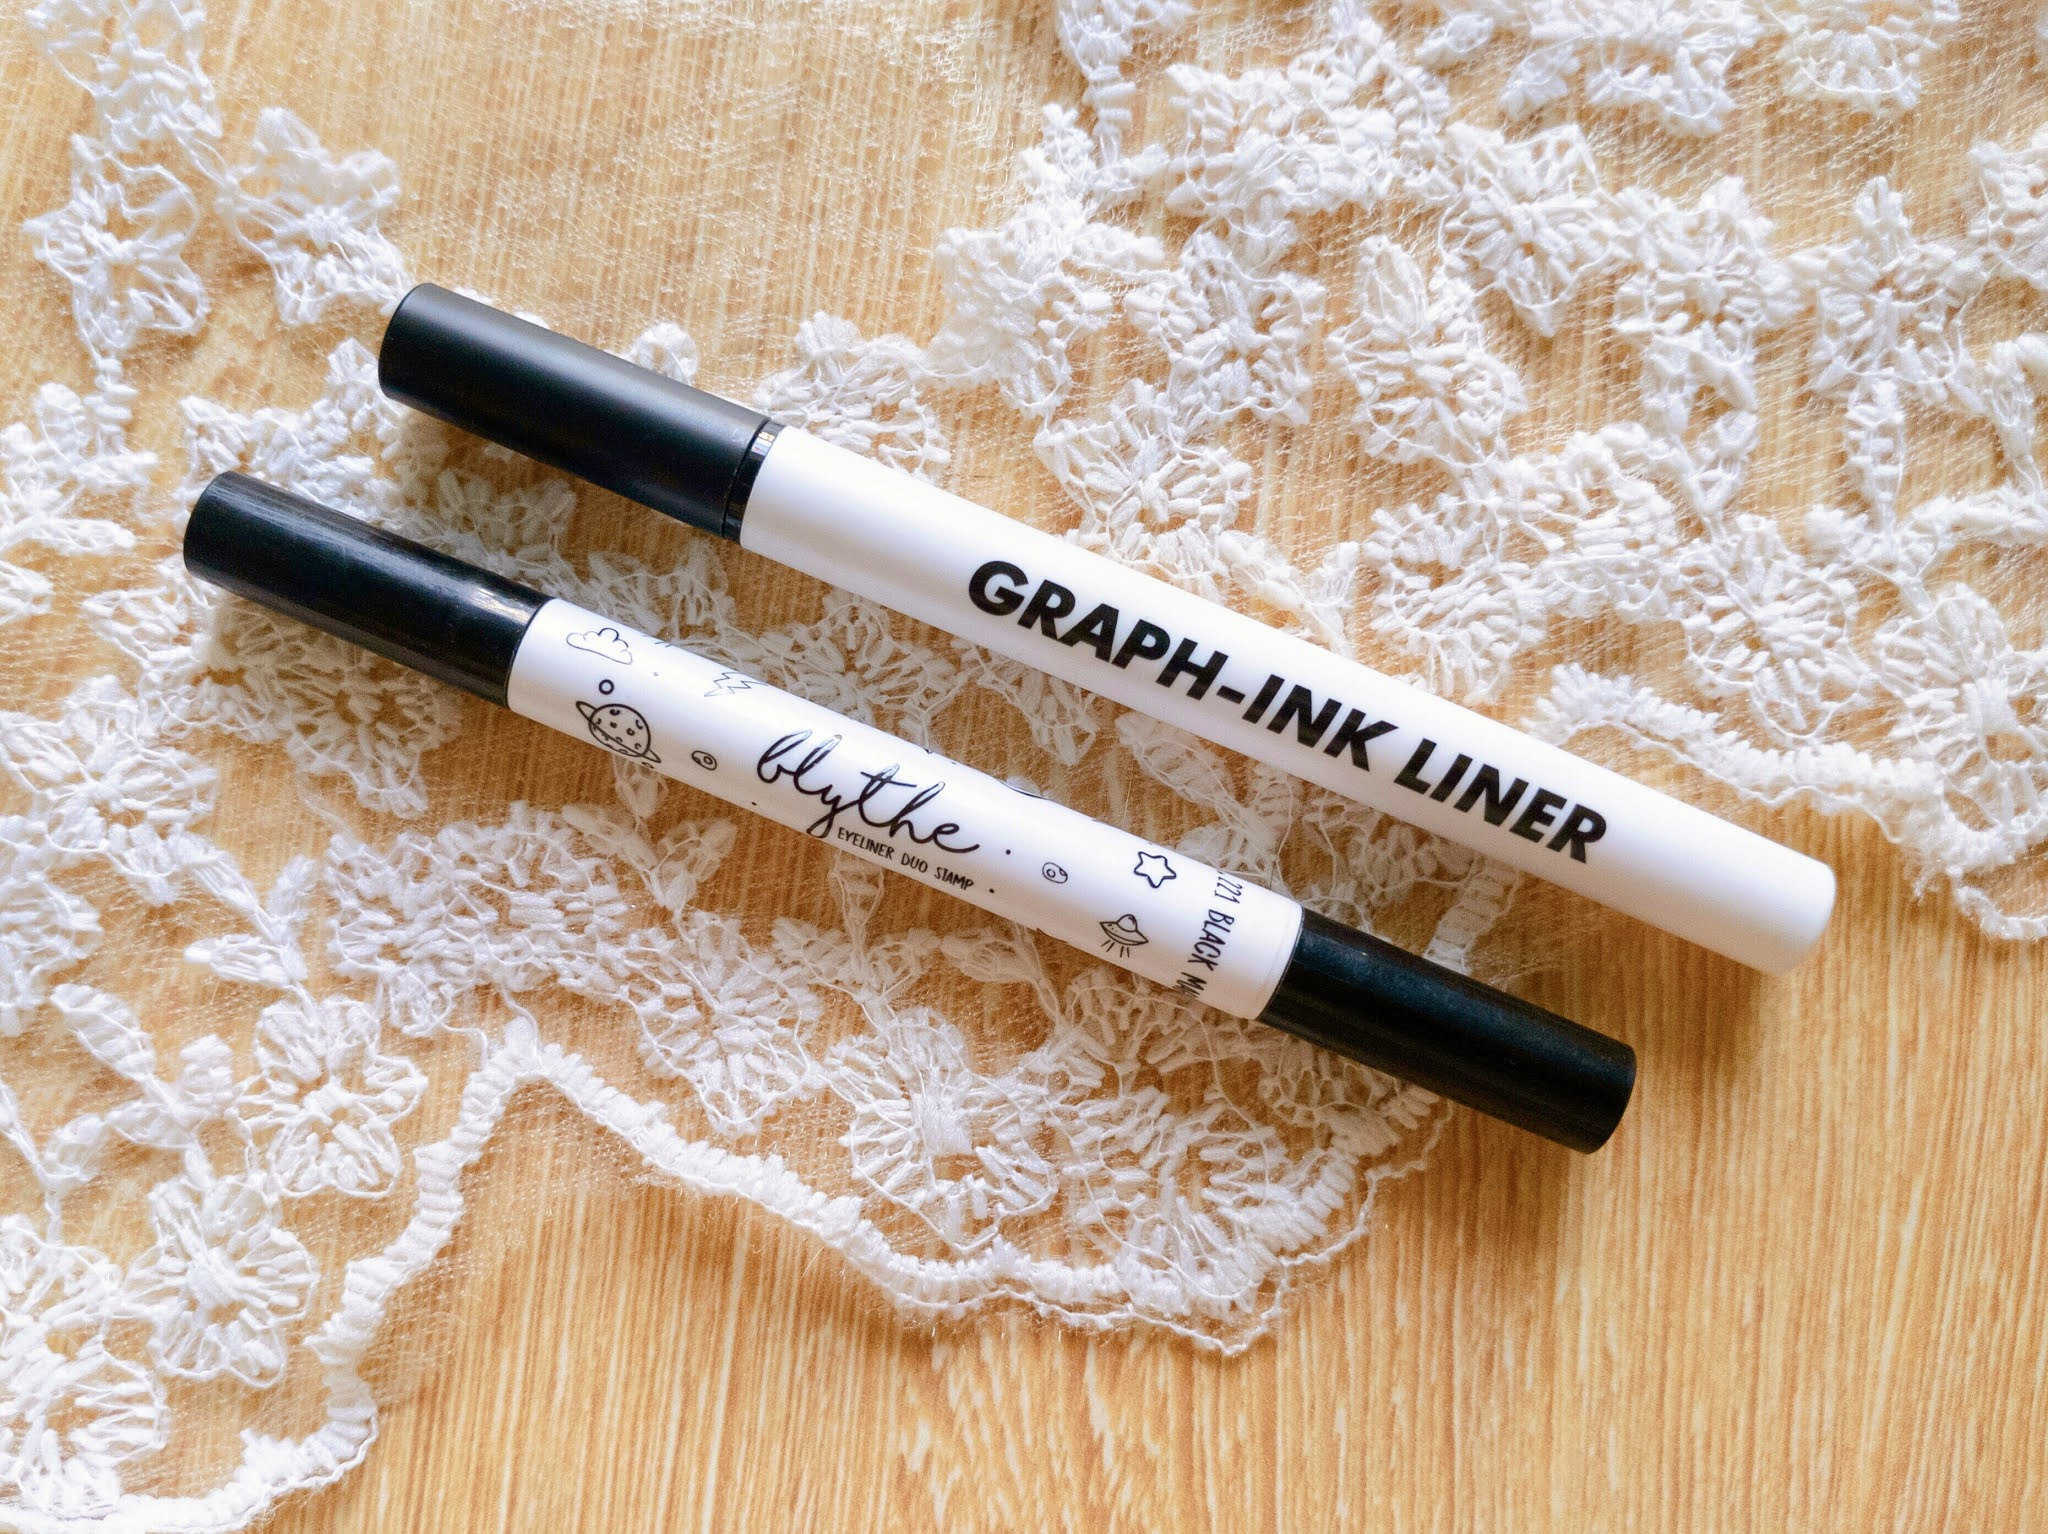 Careline Graph-Ink Liner Review   chainyan.co